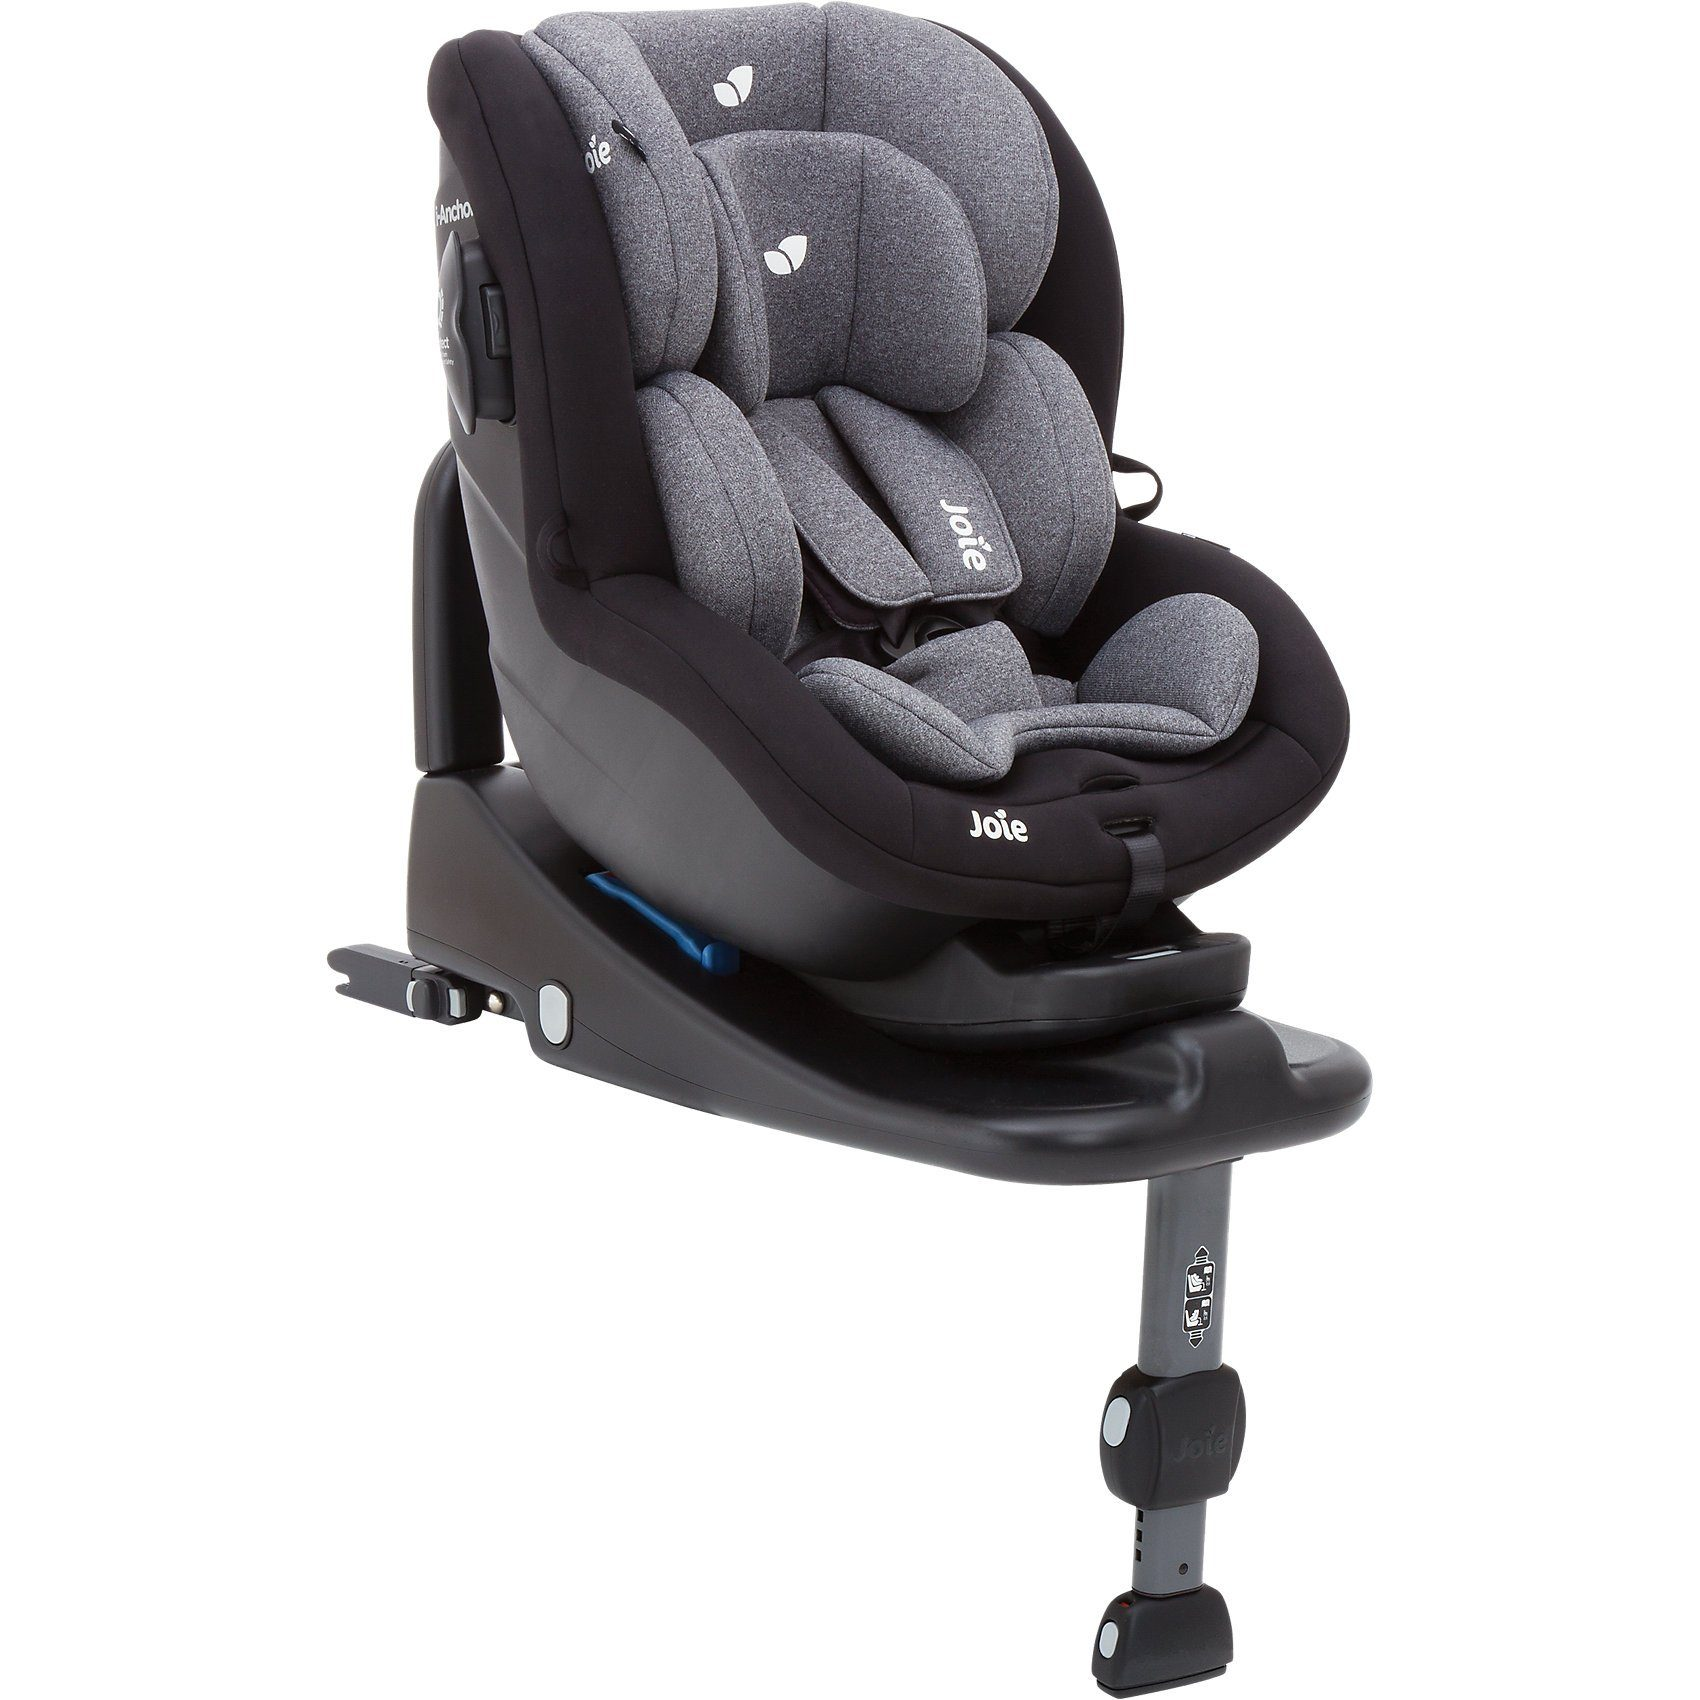 Joie Auto-Kindersitz i-Anchor Advance, Two Tone Black